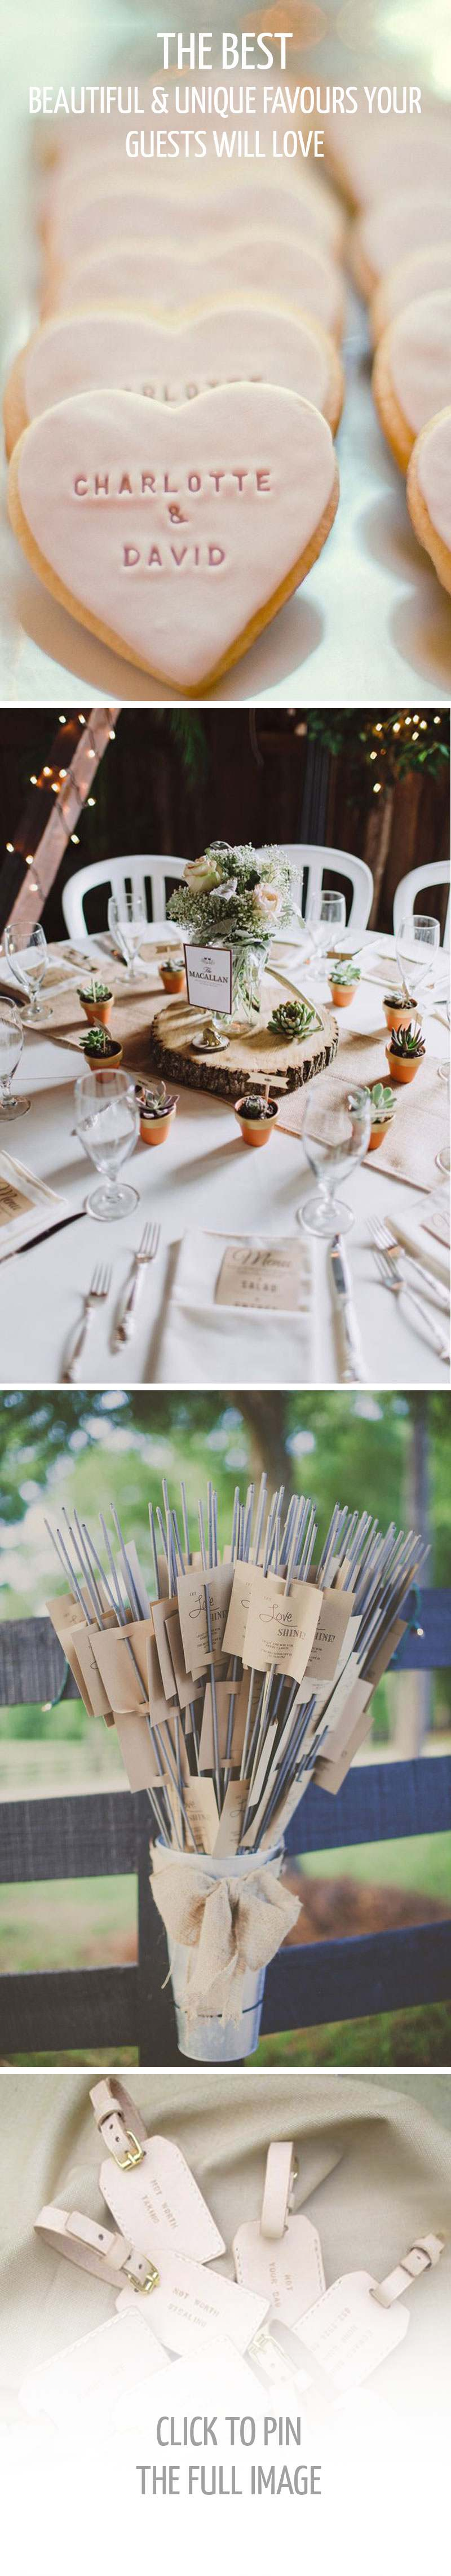 Ten Beautiful Wedding Favours Your Guests Will Actually Love by RMW